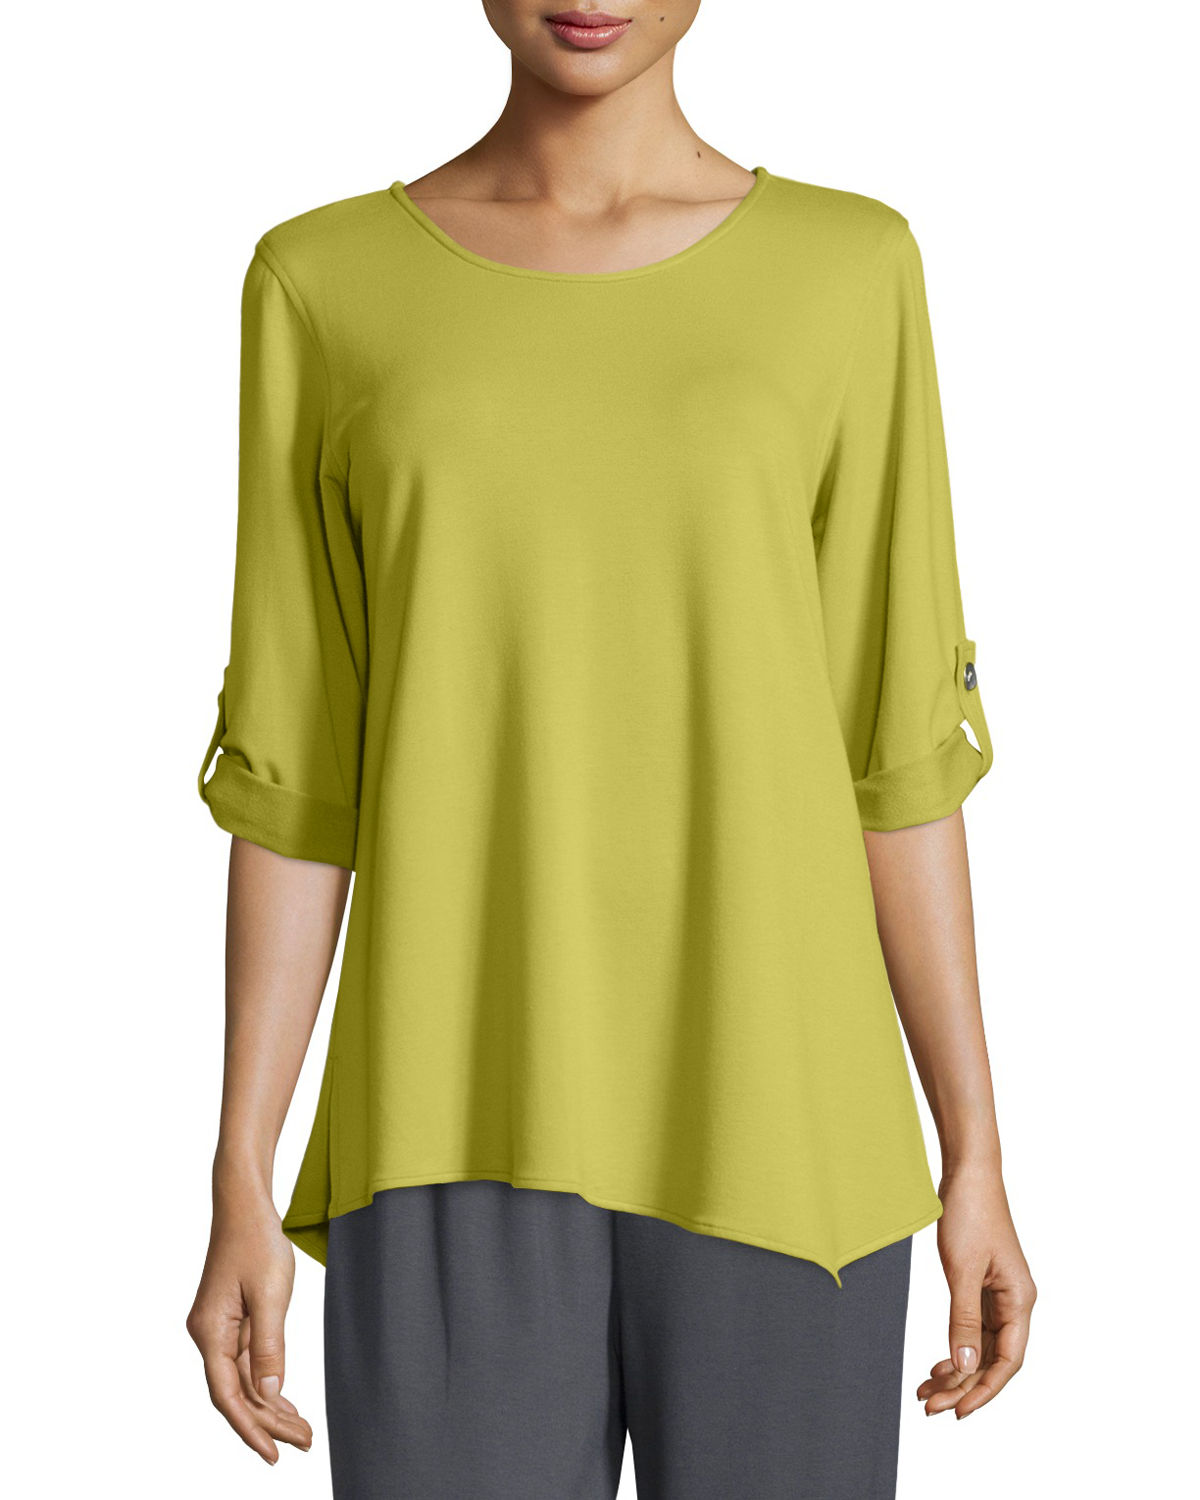 Terry Tabbed-Sleeve Top, Plus Size